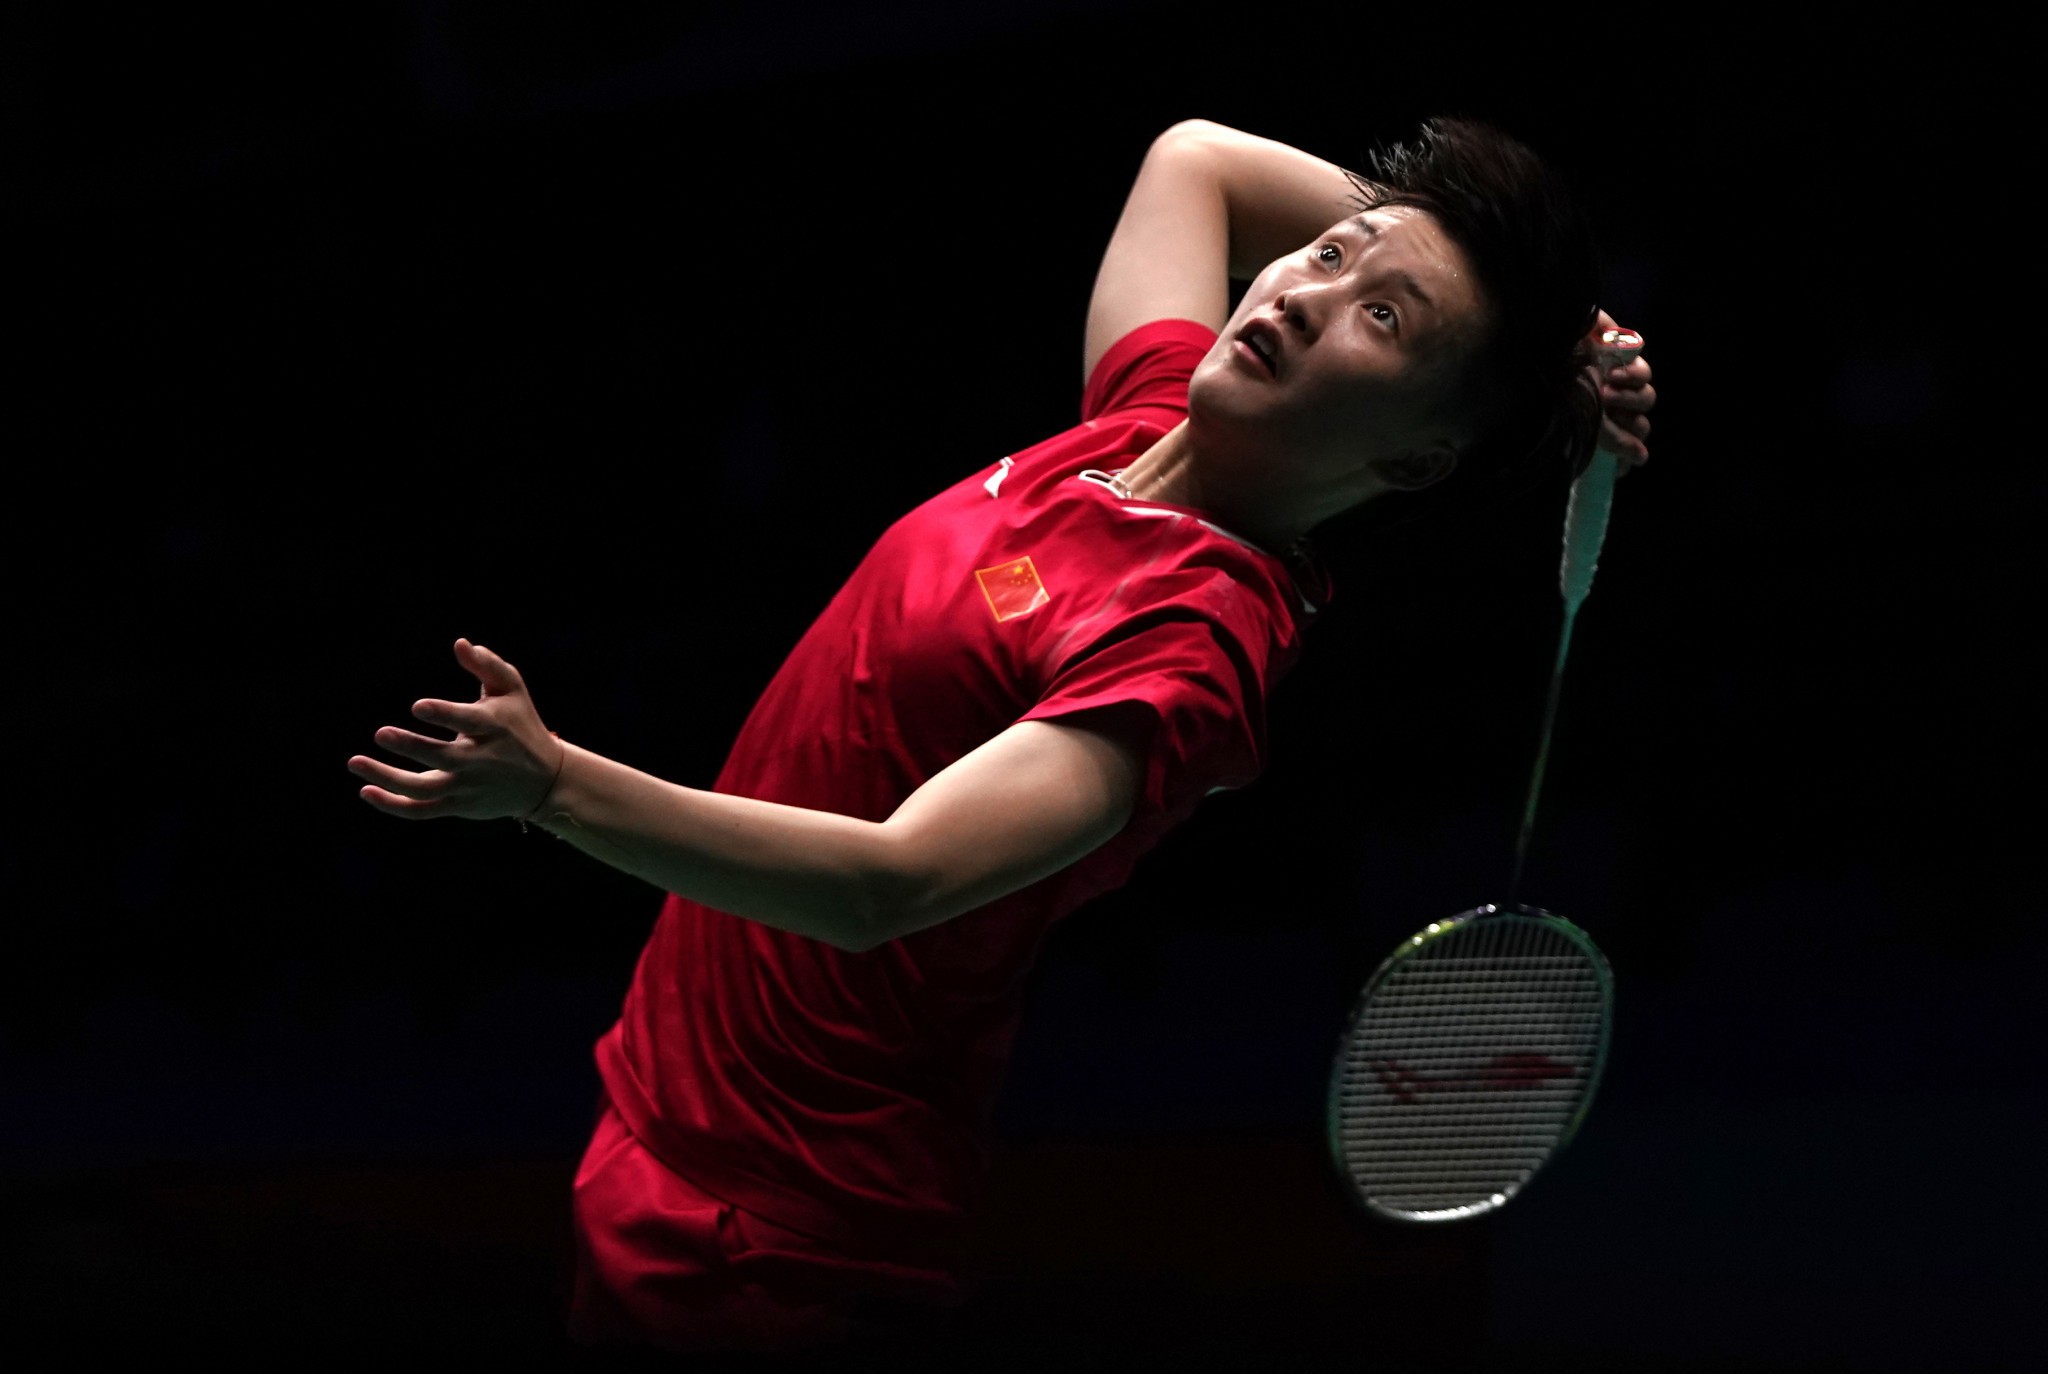 China's Chen Yufei is the women's singles top seed ©Getty Images